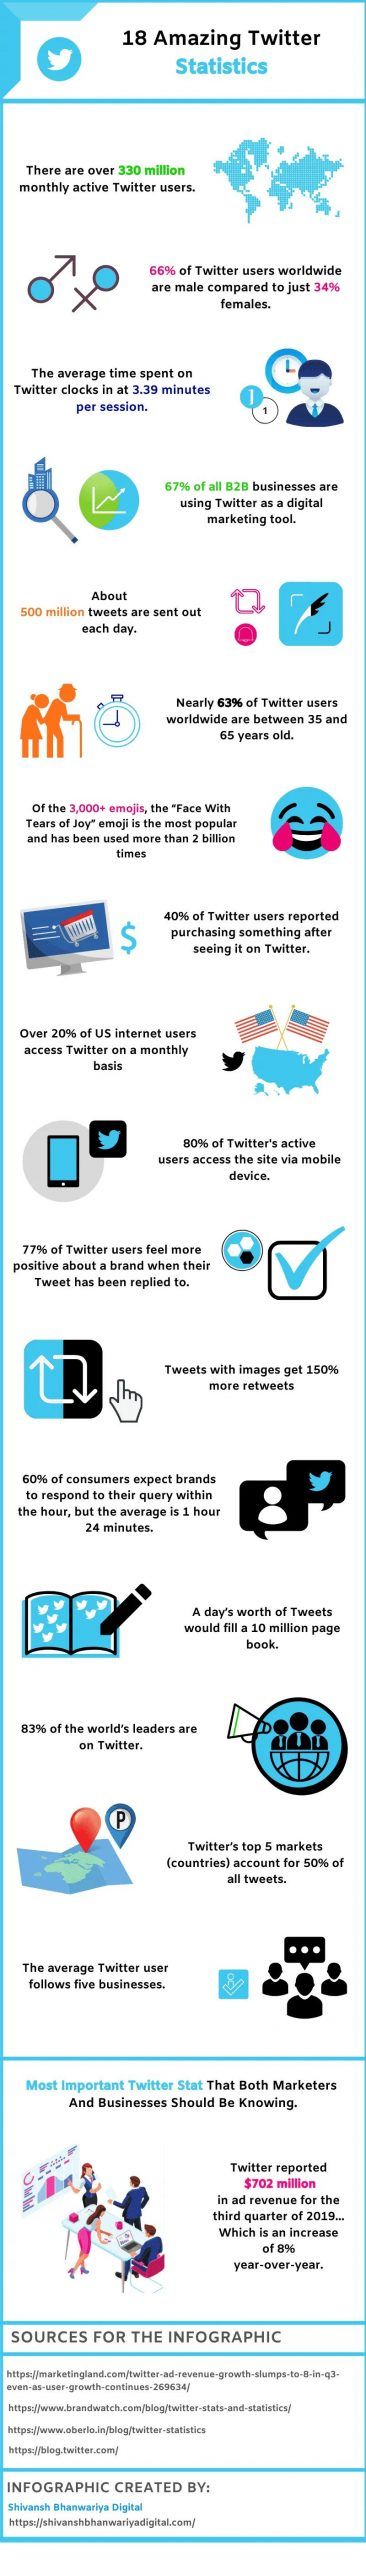 Twitter stats infographic 2020